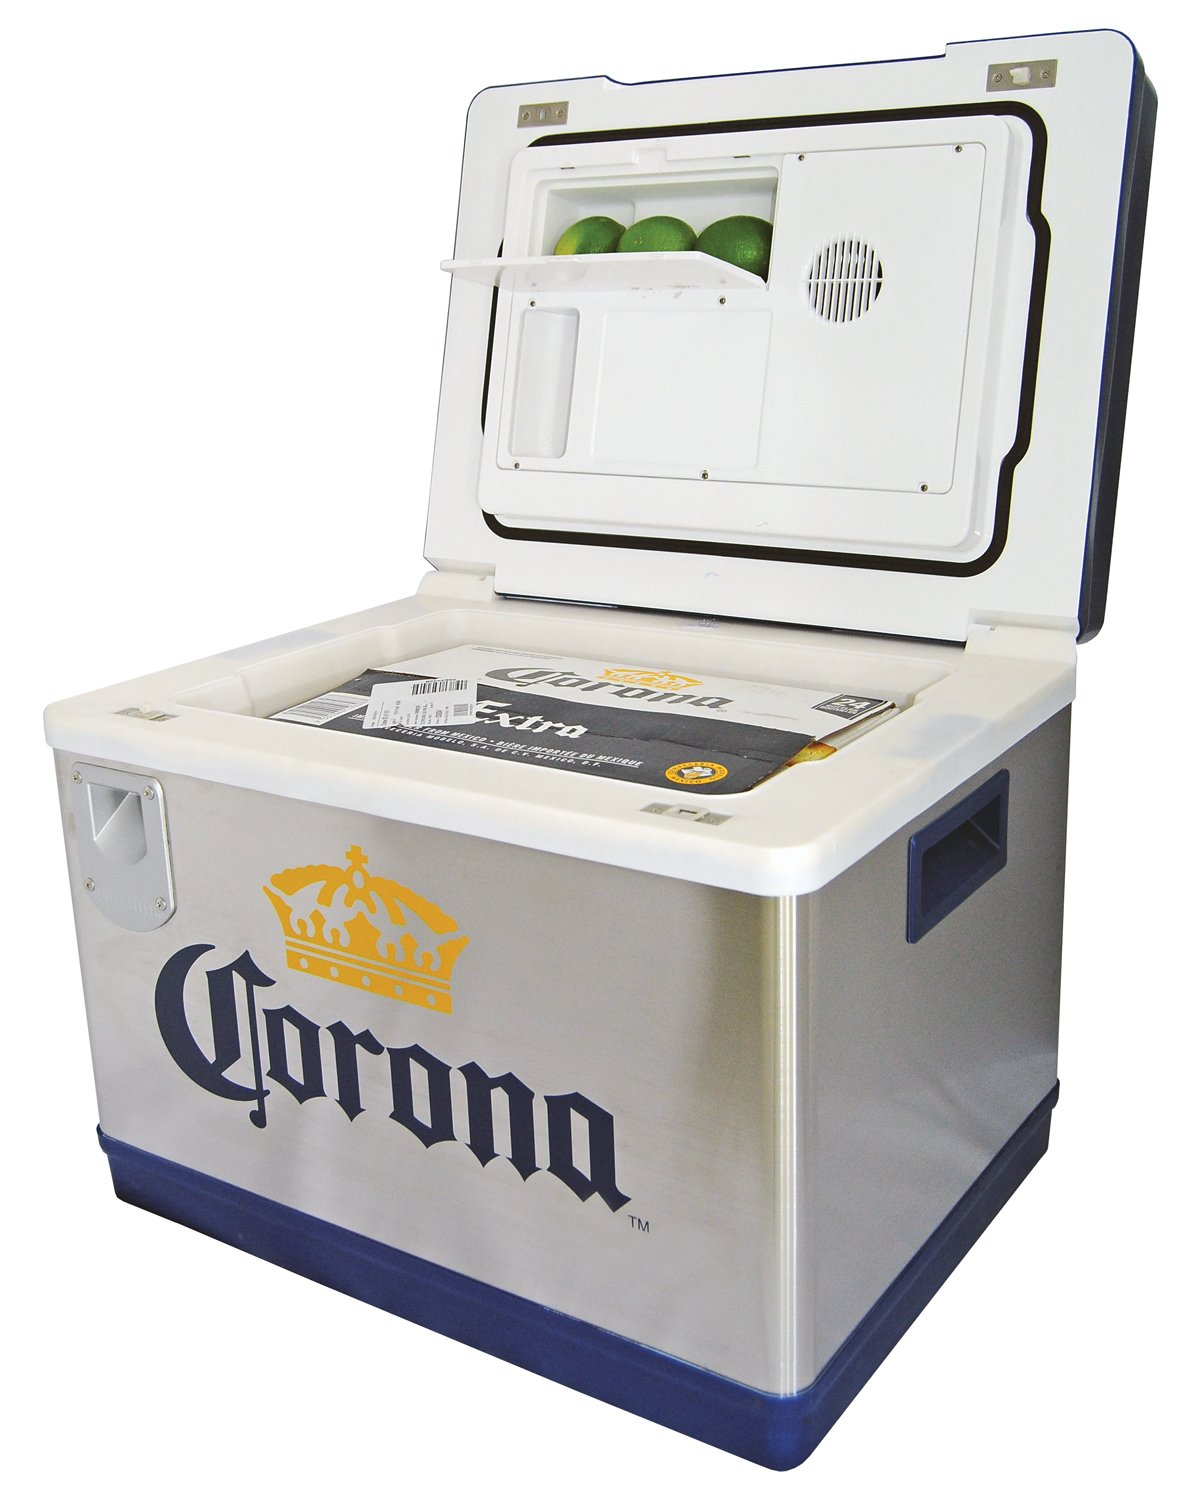 Corona Cruiser CORC-24 Thermoelectric Cooler by Koolatron